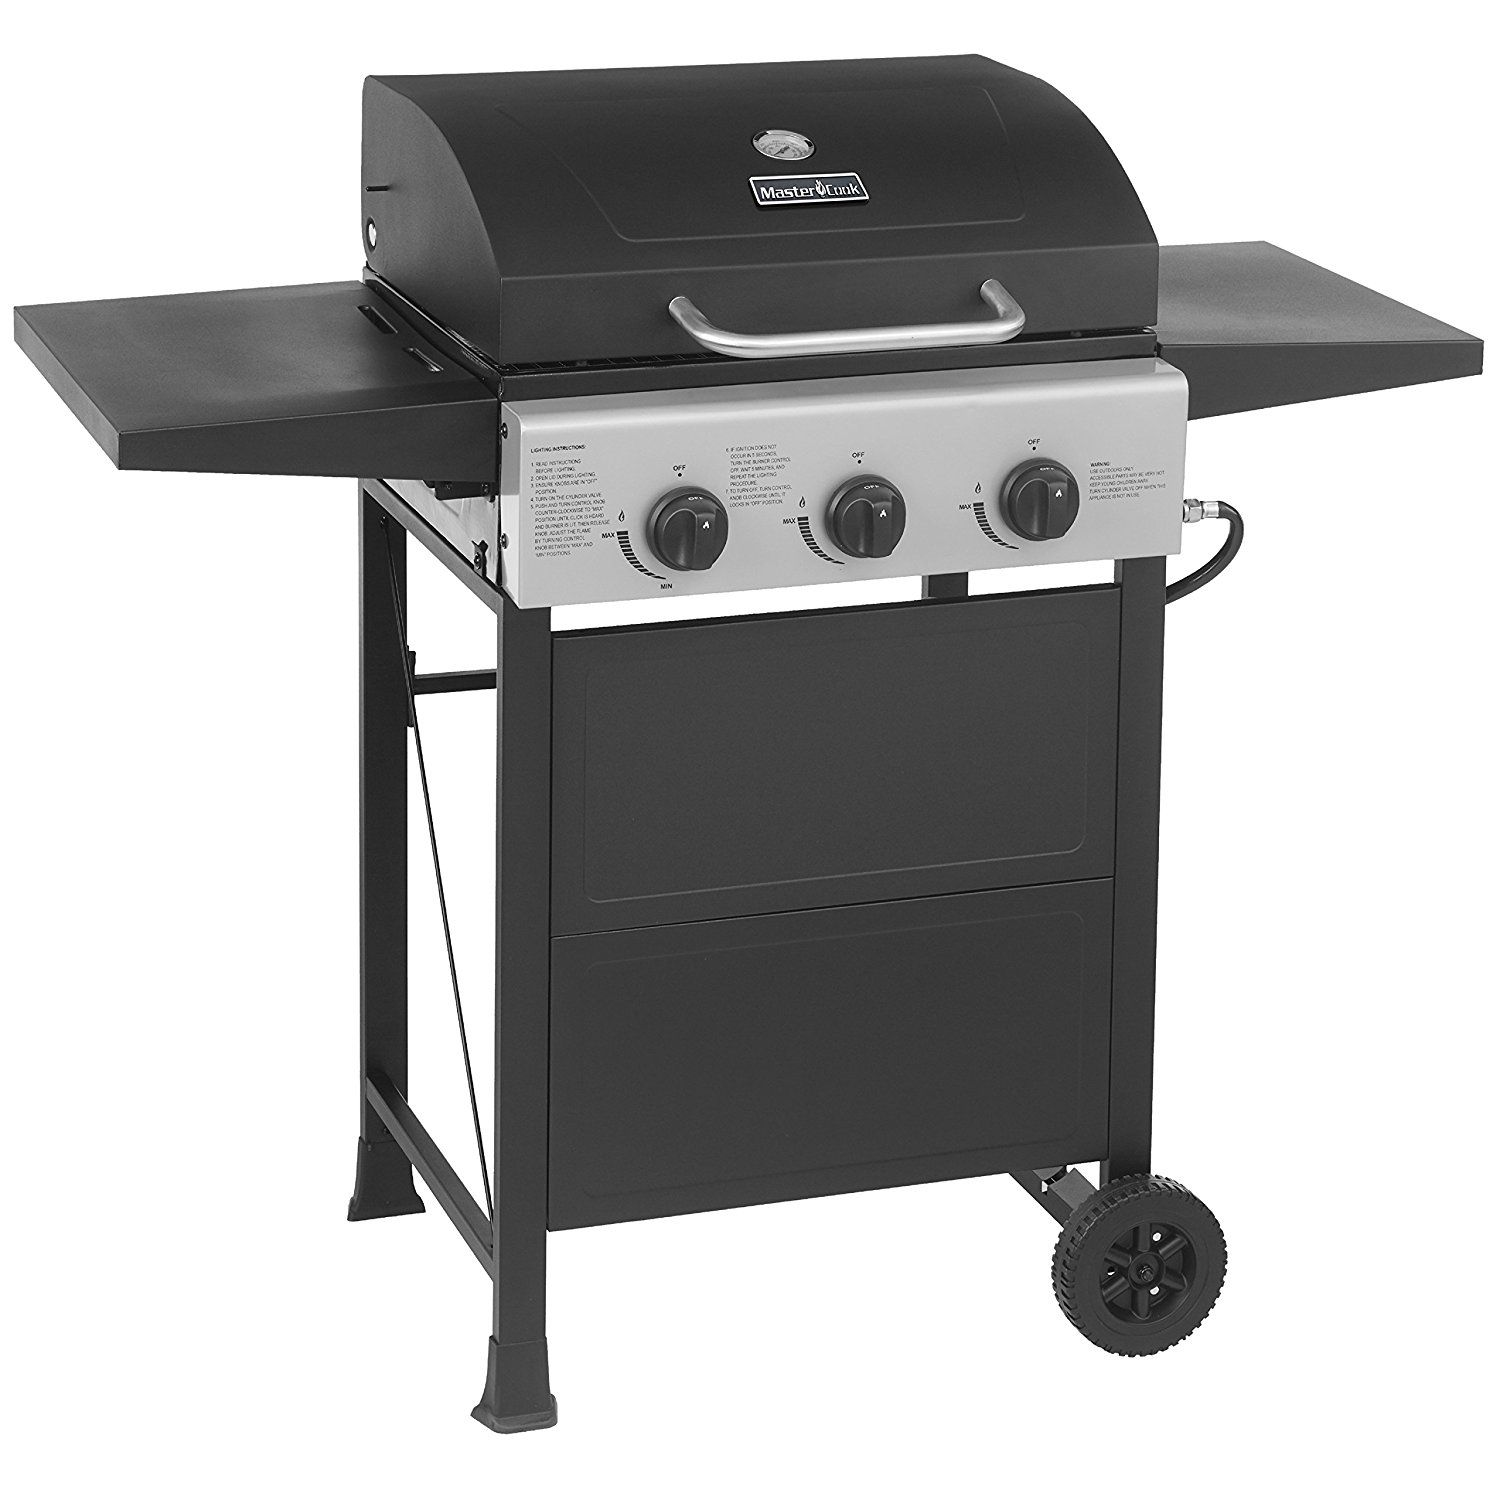 Best Gas Grills 2019 Weber Grills Charcoal Grill Grill Portable Gas Grill Natural Gas Grills Gas Barbecue Weber G Gas Grill Propane Gas Grill Gas Grill Reviews